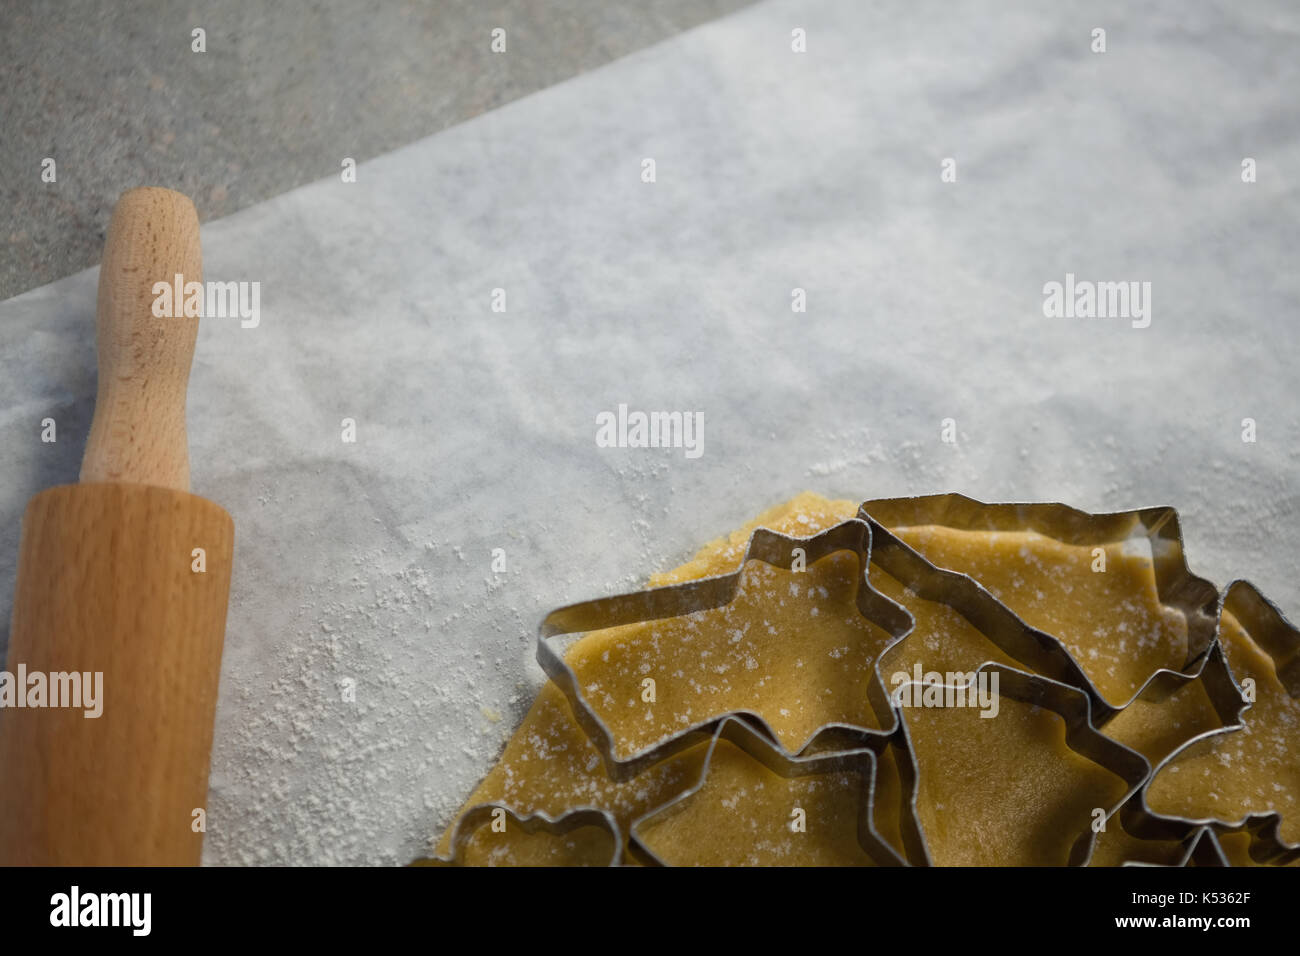 Cropped image of various pastry cutters over dough on wax paper at table - Stock Image